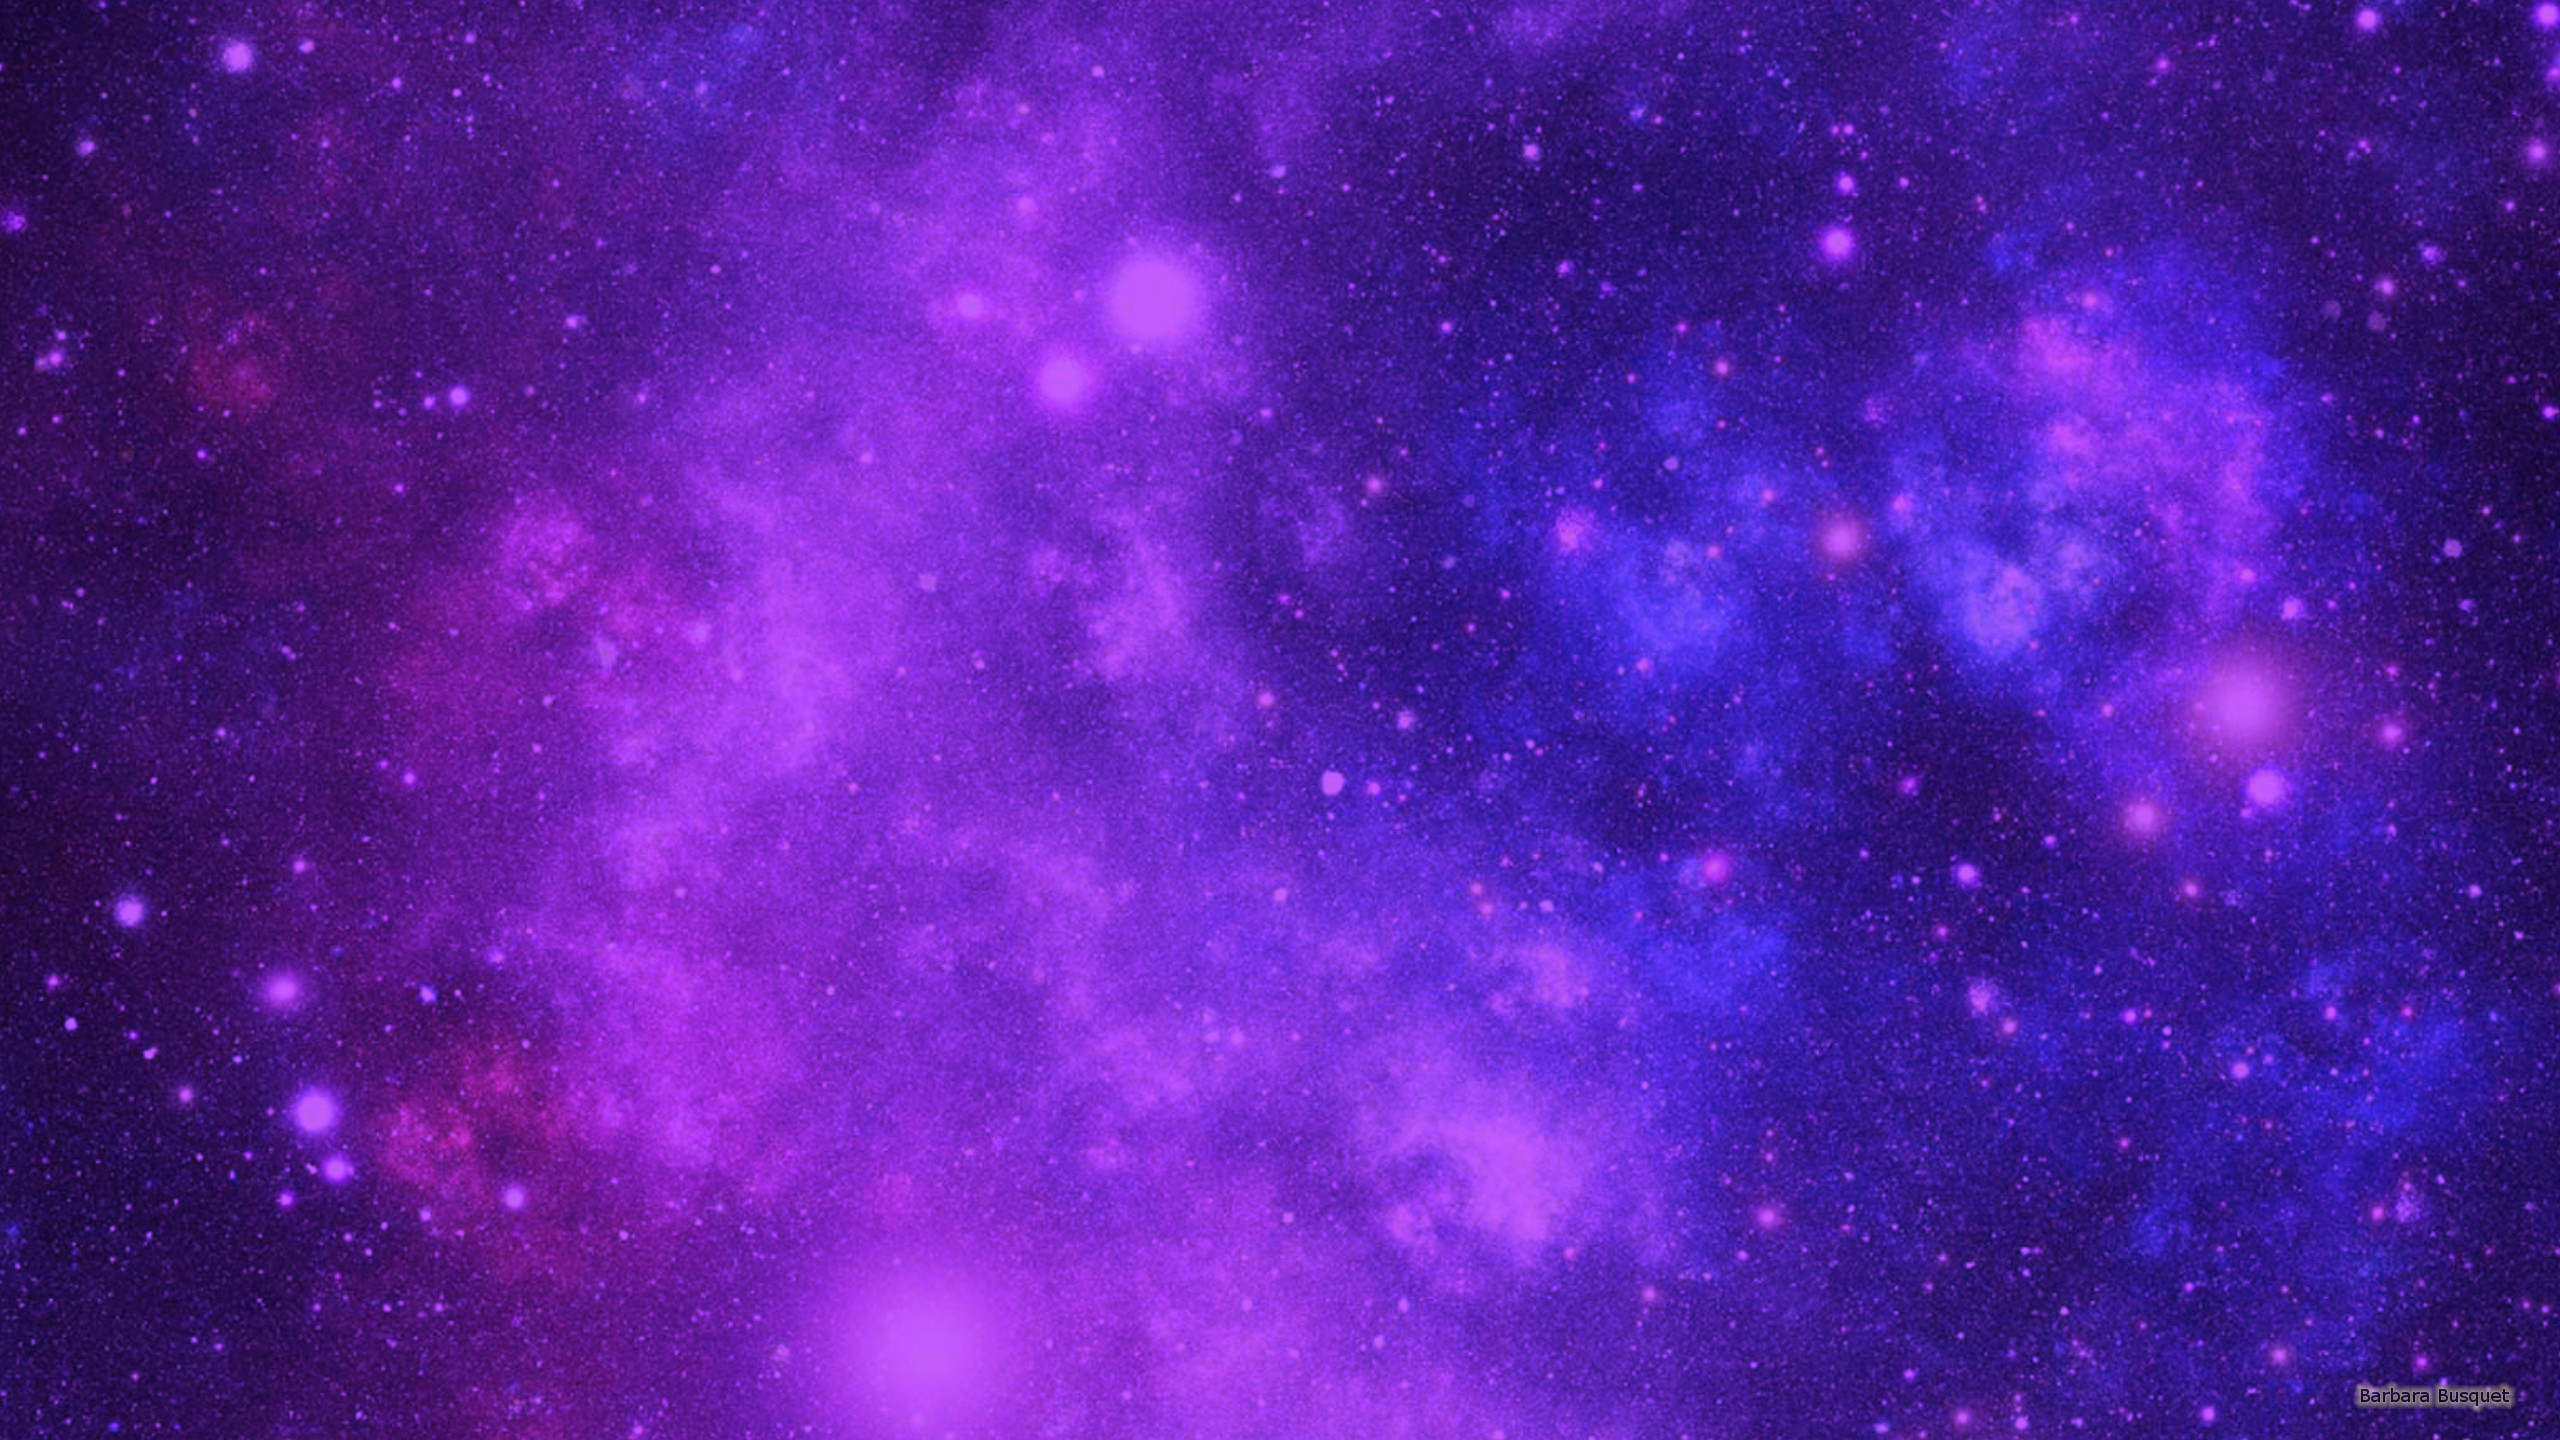 2560x1440 Galaxy Wallpapers - Barbaras HD Wallpapers